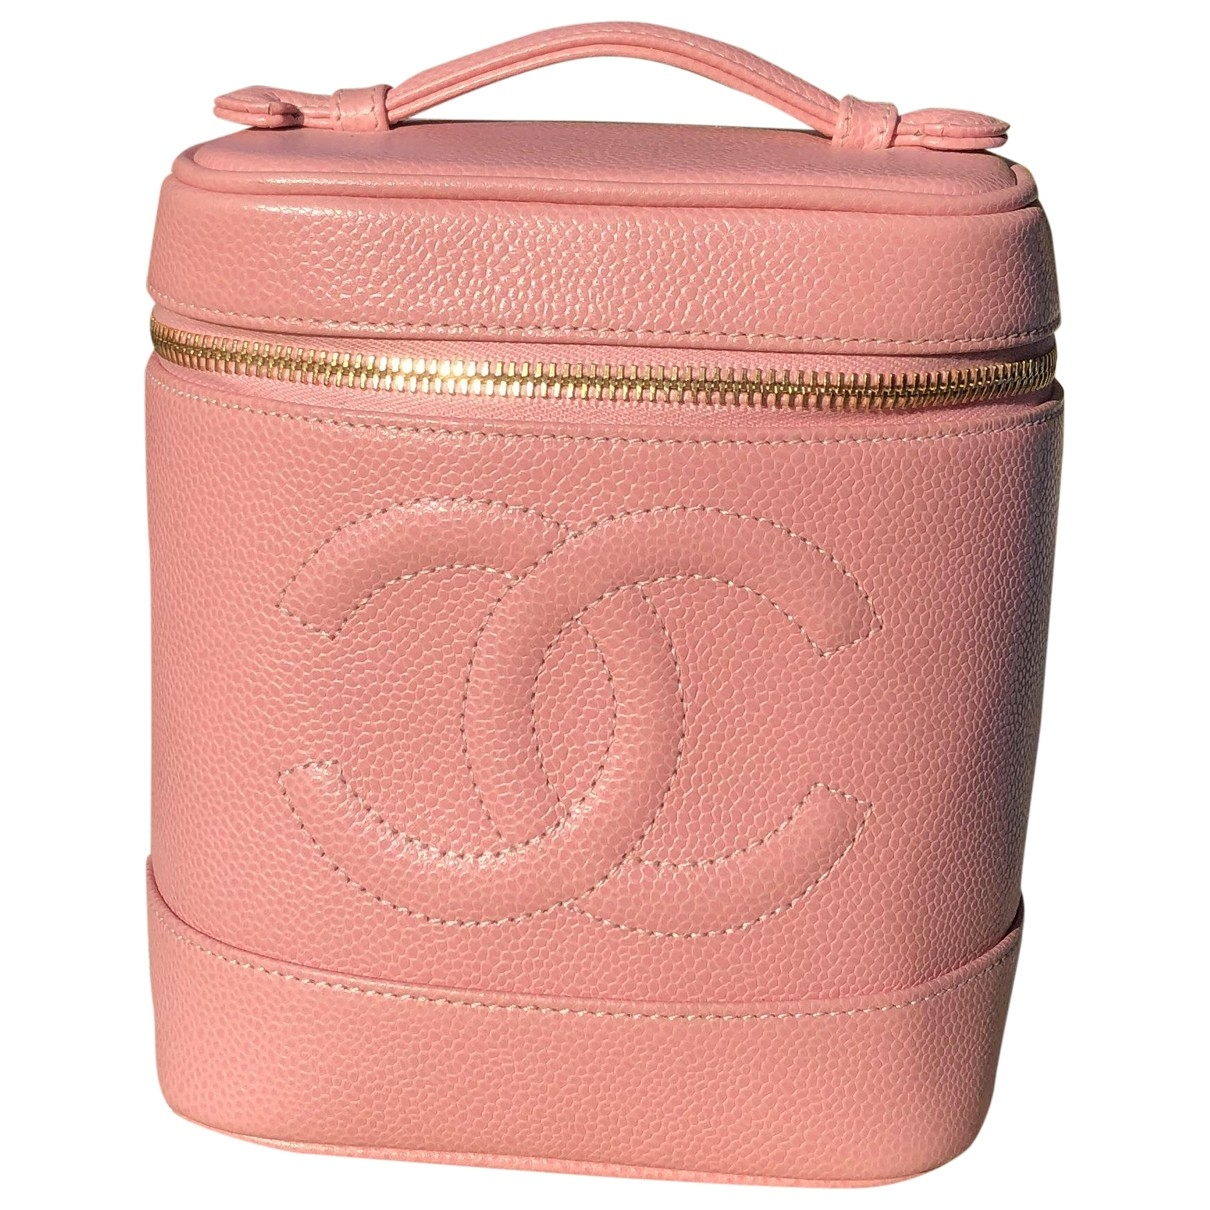 Chanel \N Pink Leather Travel bag for Women \N